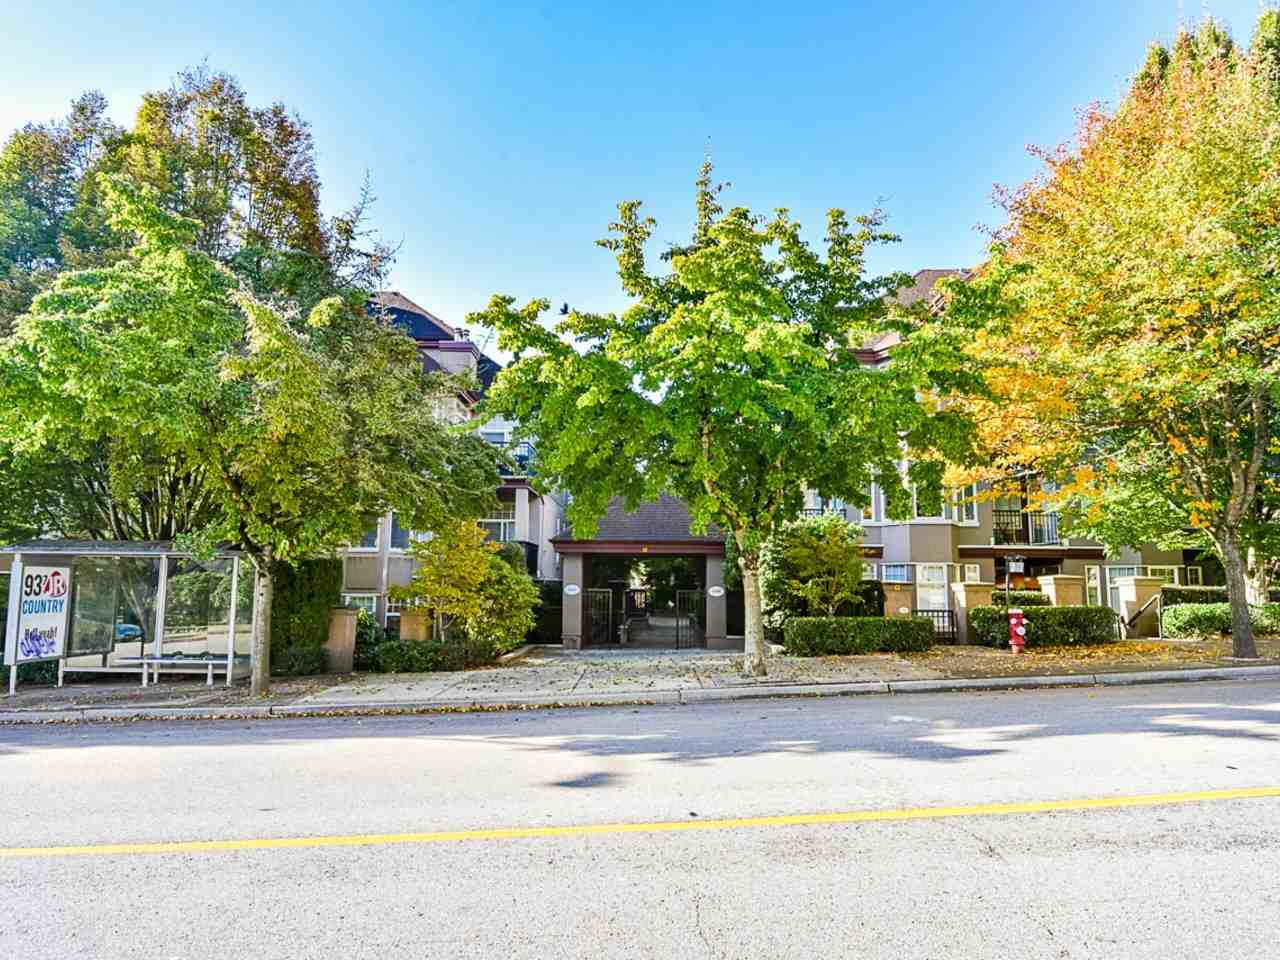 401 588 TWELFTH STREET - Uptown NW Apartment/Condo for sale, 3 Bedrooms (R2512750) - #1